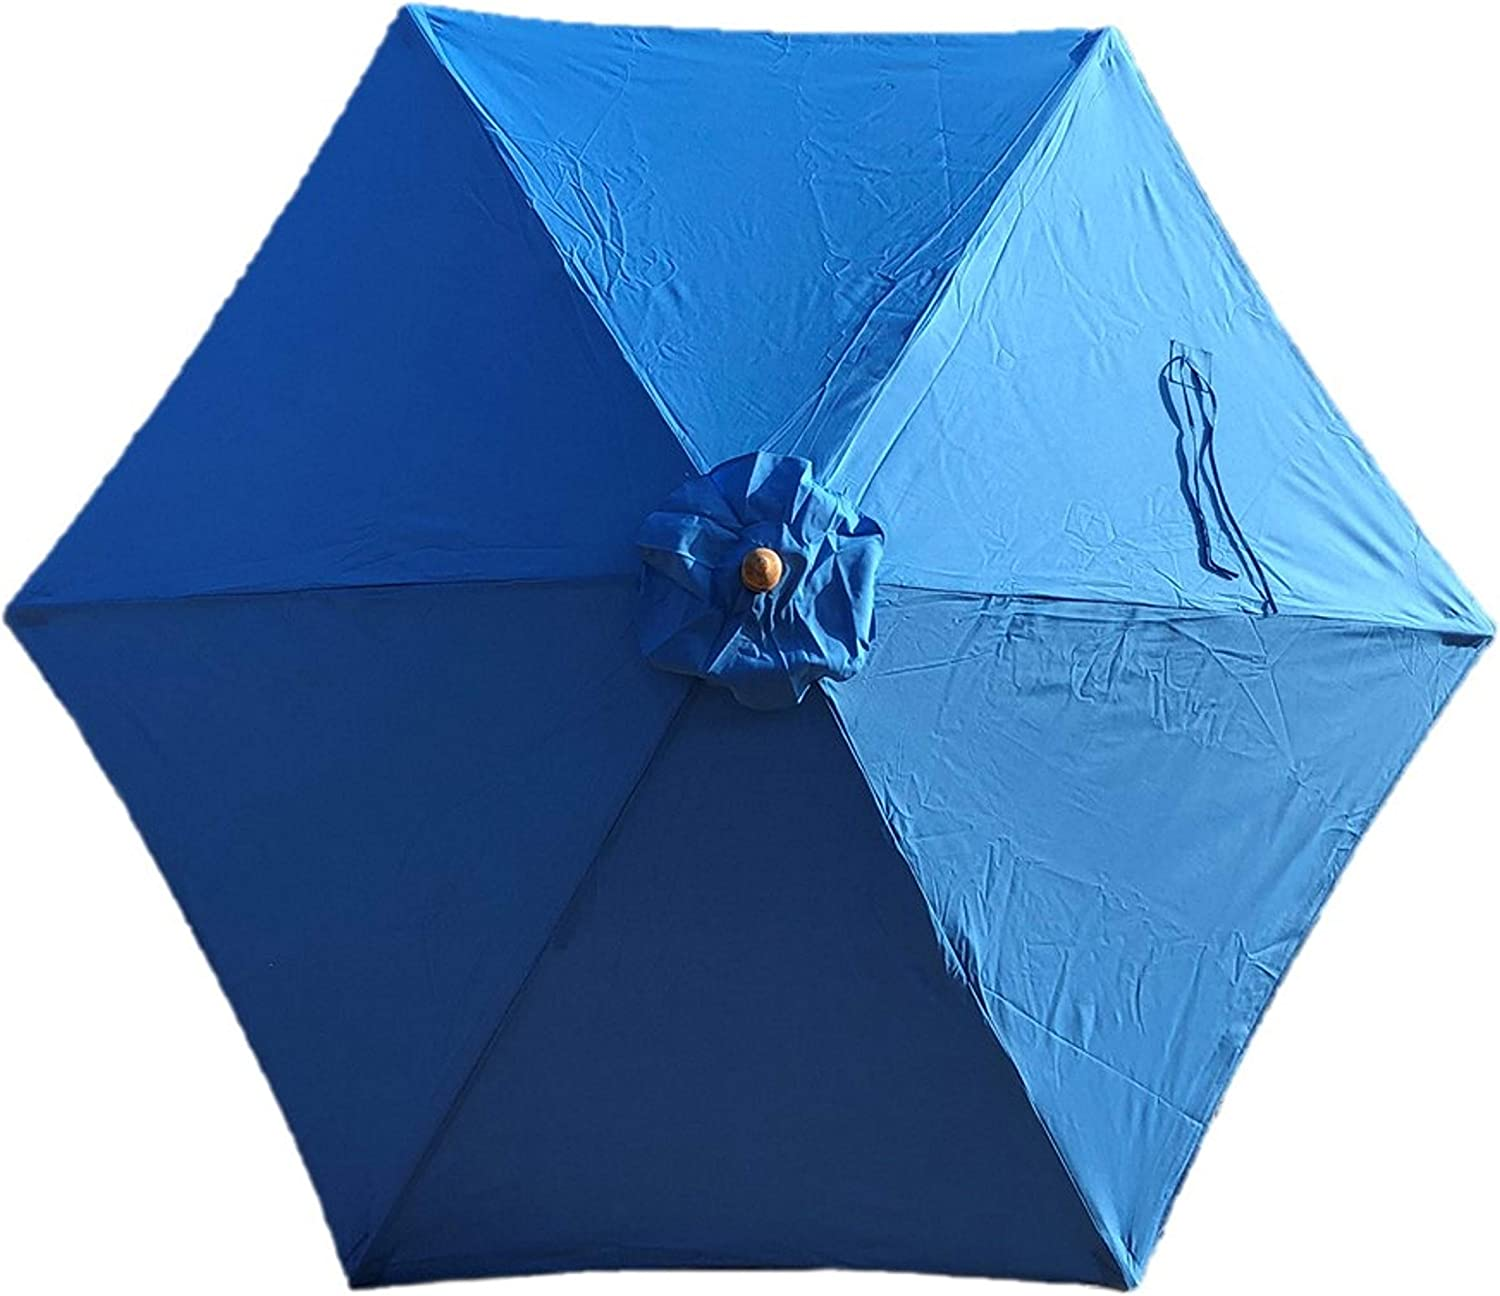 Formosa Covers 9ft Umbrella Replacement Canopy 6 Ribs in Royal Blue or Light Blue (Canopy Only) (Capri Blue)